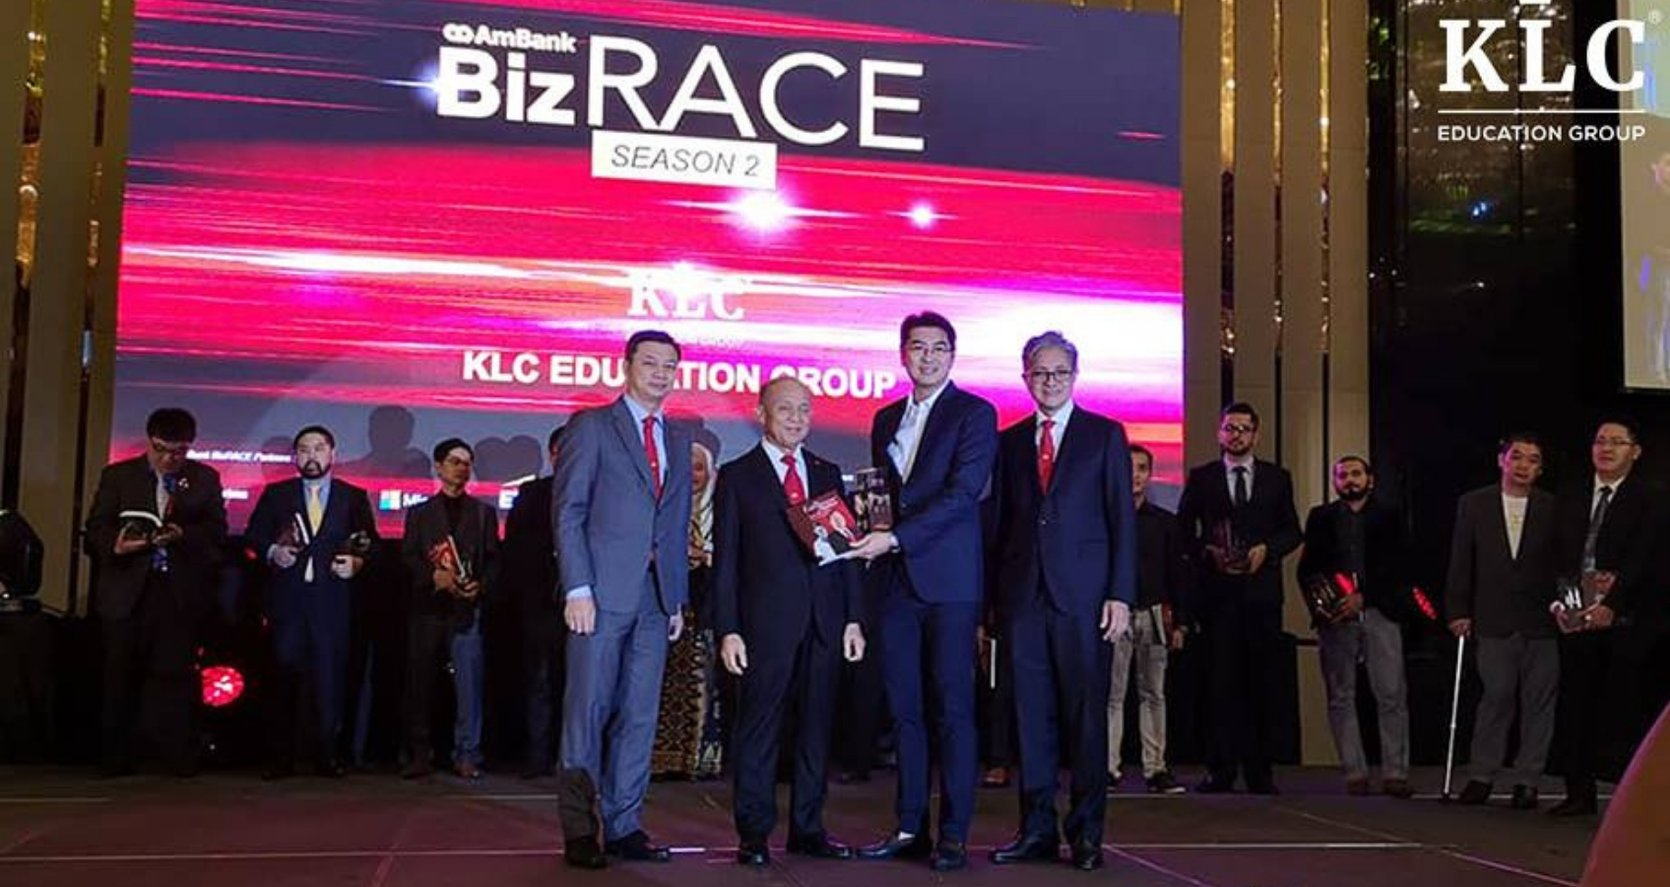 KLC Received Top 30 Ambankbizrace